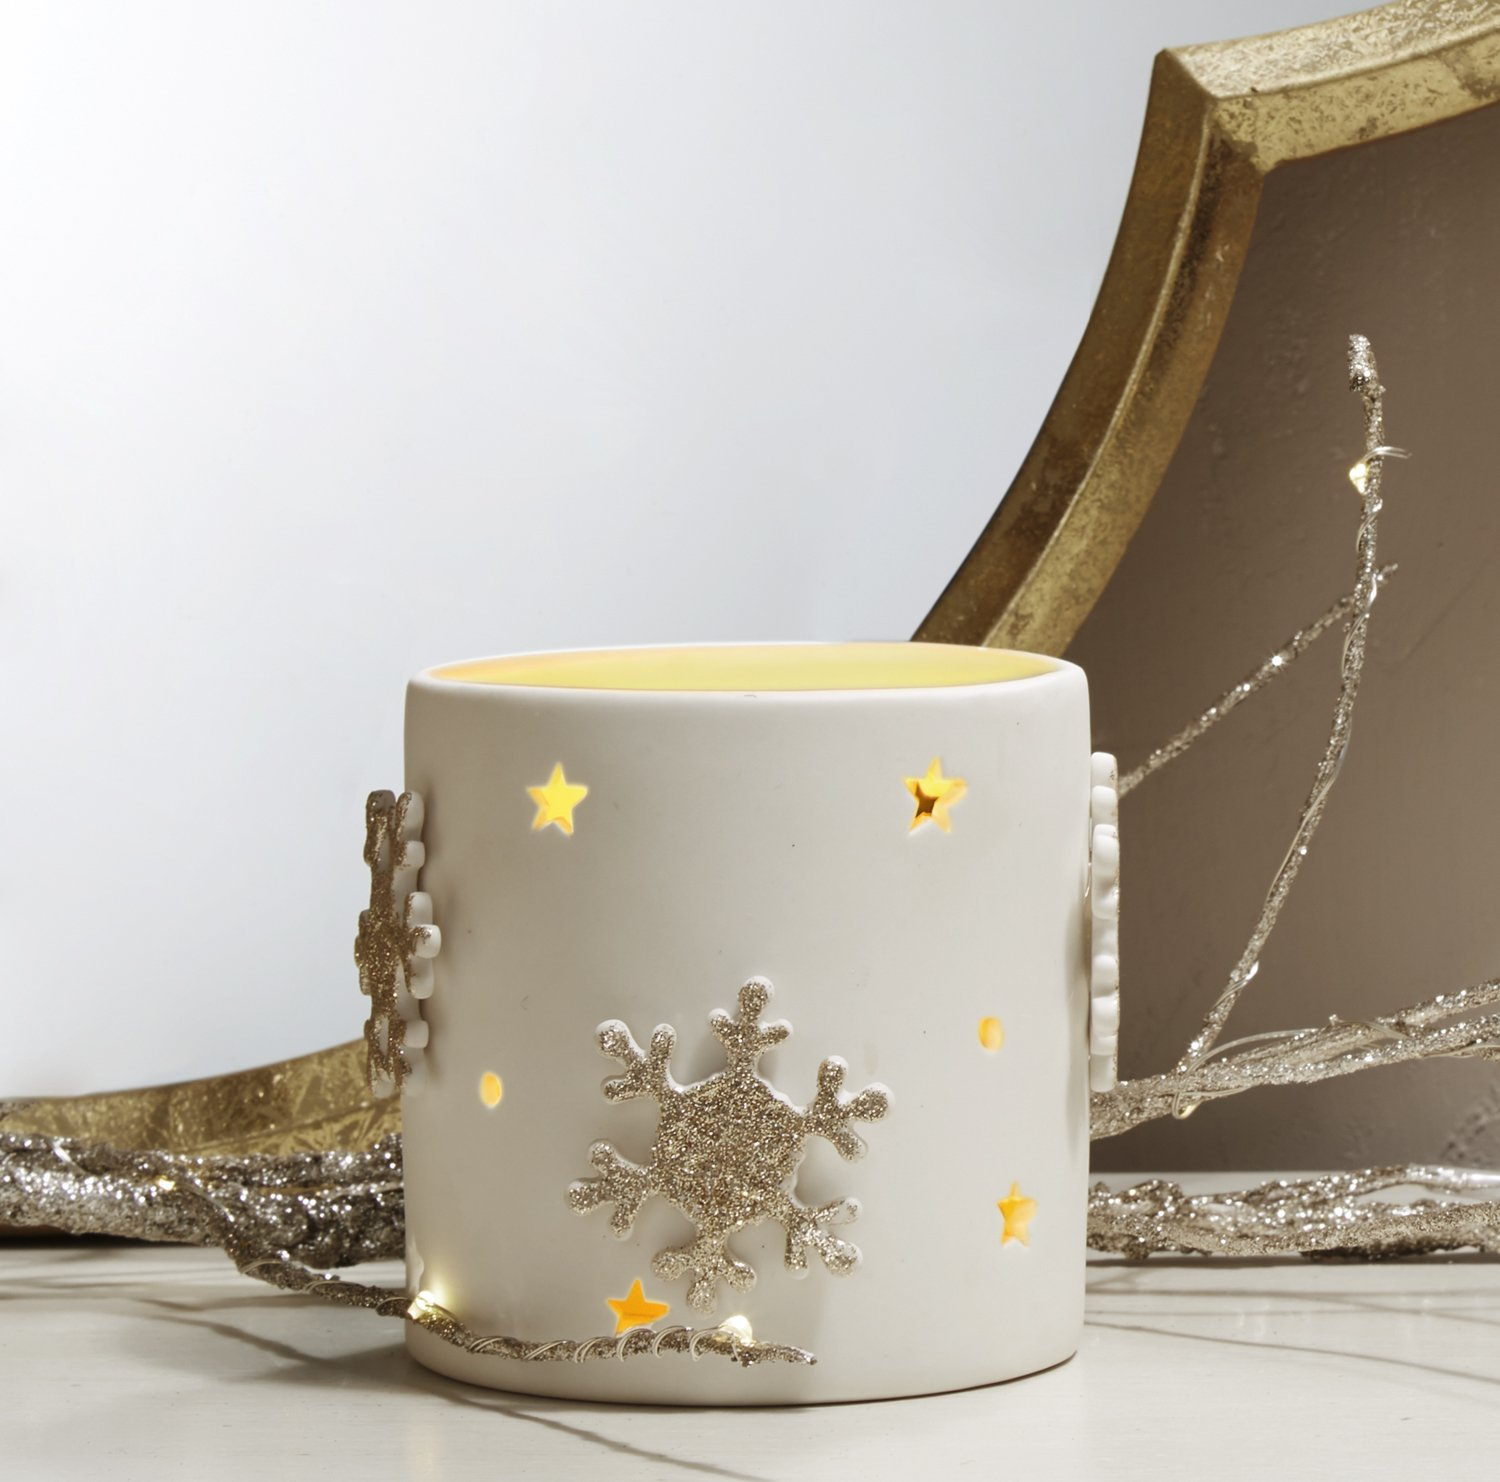 3.5'' Pillar Candle Holder, White Porcelain, Gold Snowflake Detail - For Winter, Christmas and Holiday Decor by LampLust